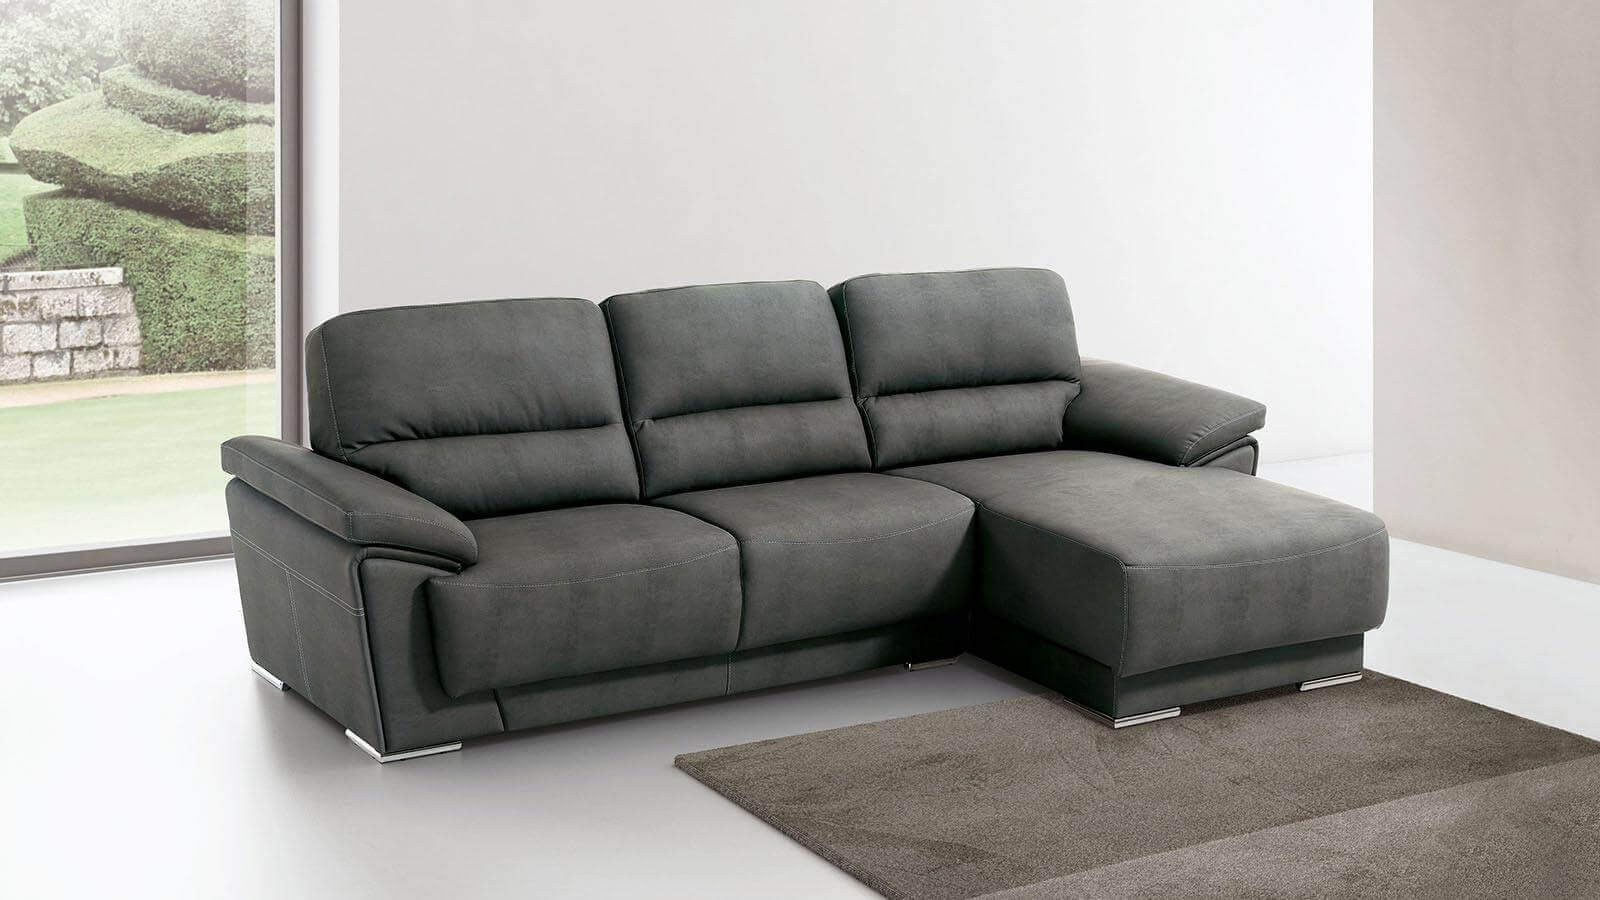 Moveis Portugal Portuguese Furniture Sofas And Mattresses Supplier